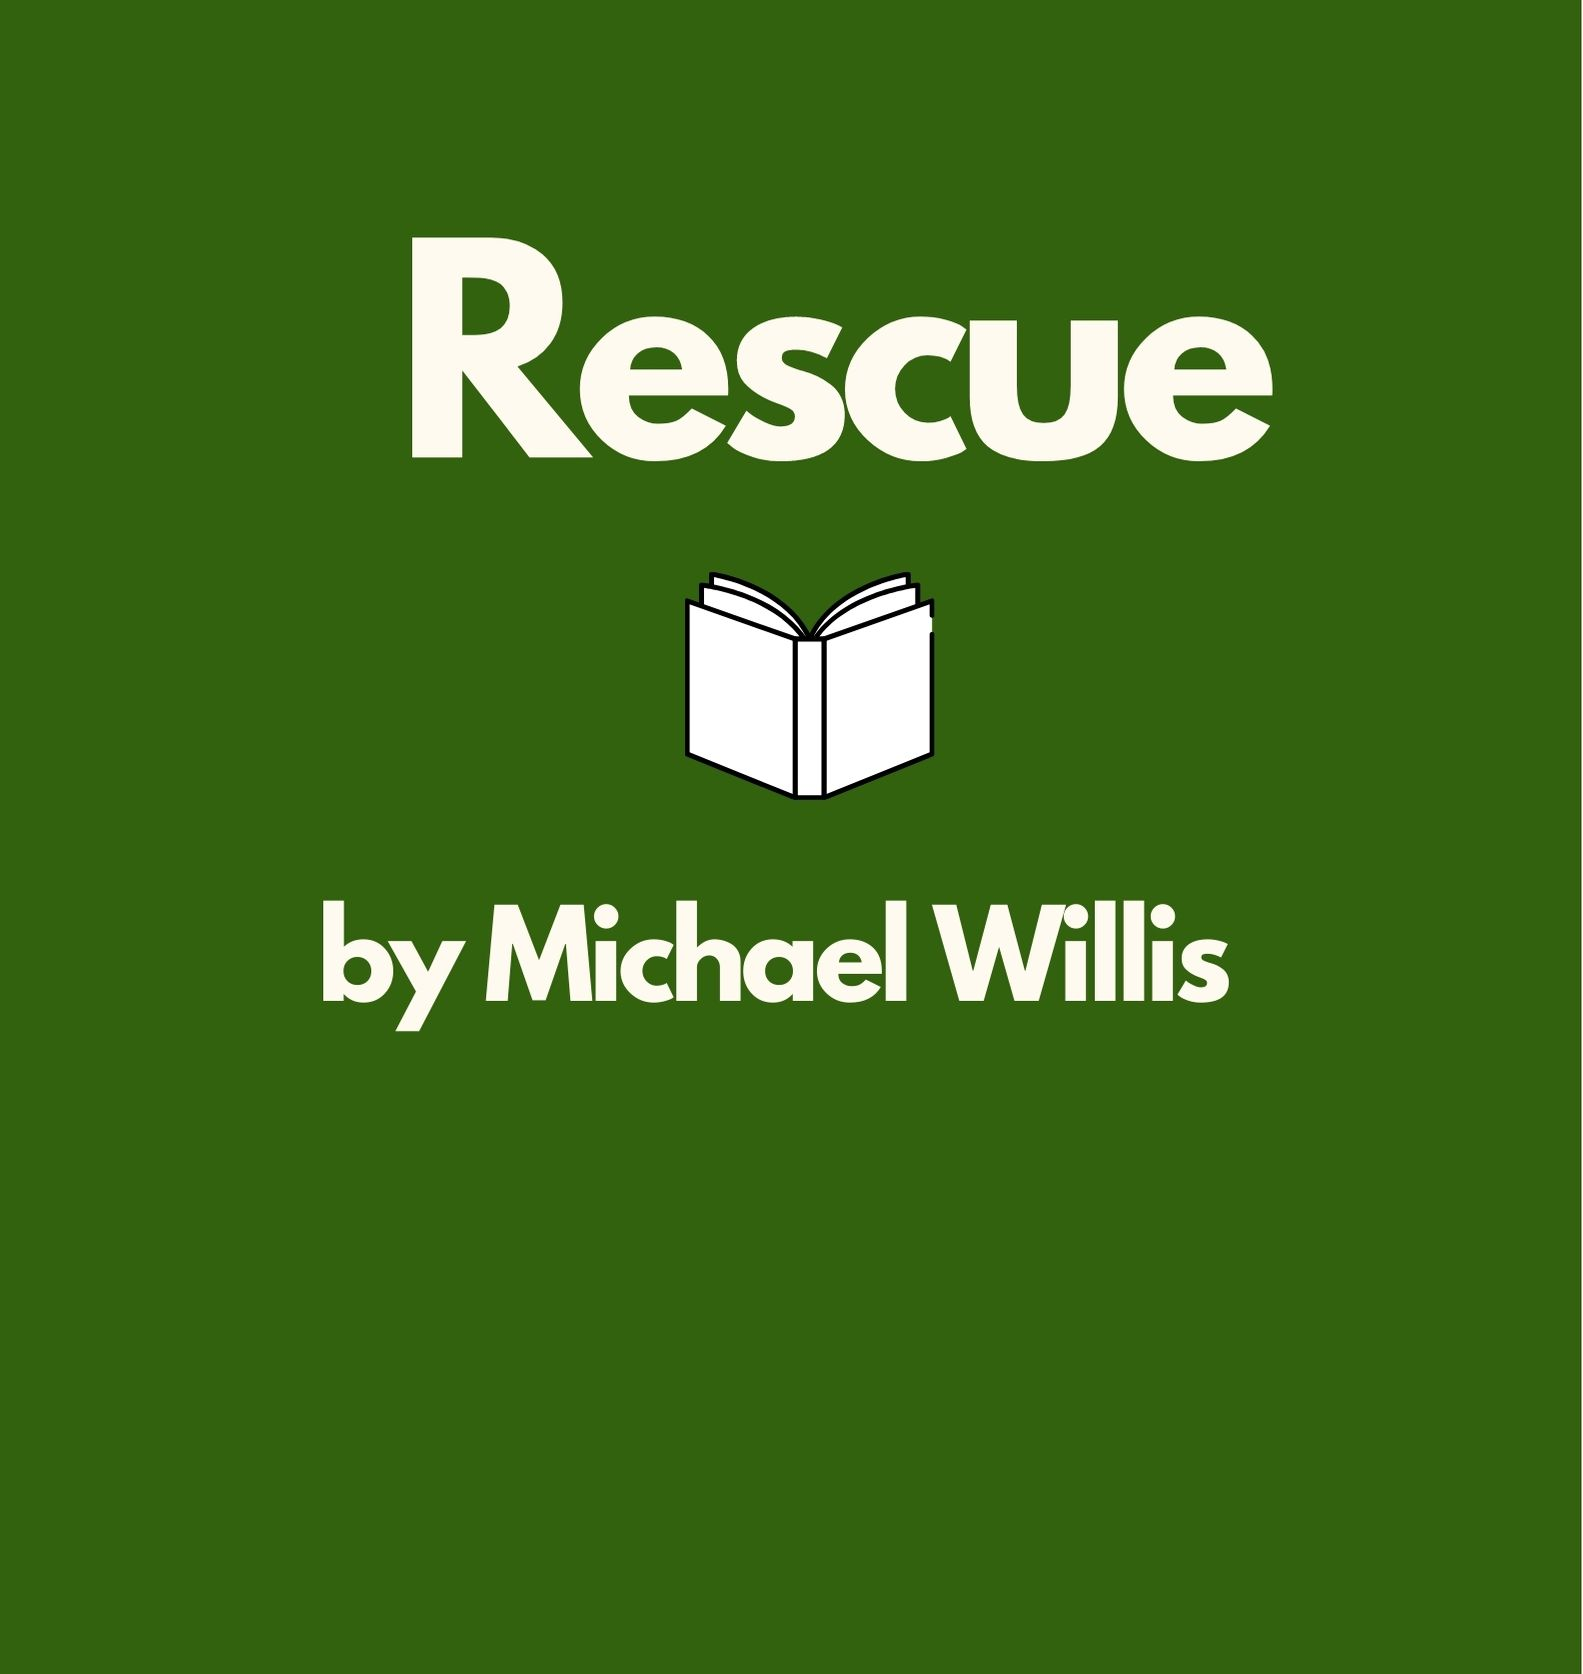 Rescue - by Michael Willis